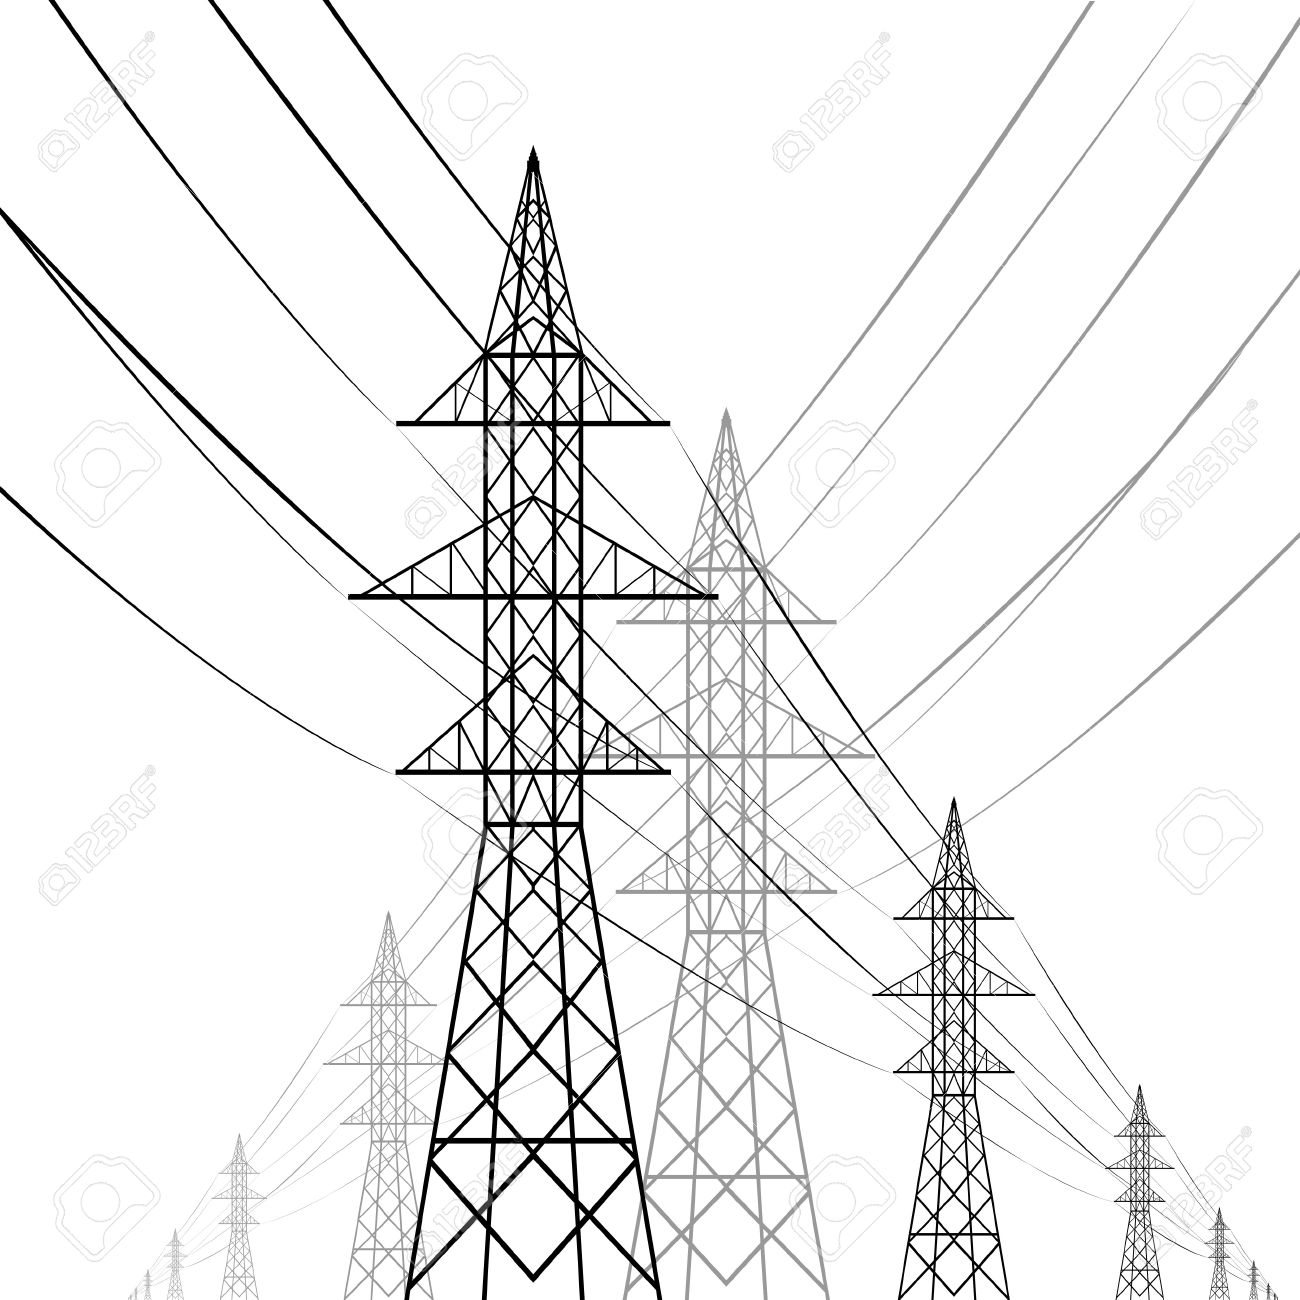 Towers of a high voltage with wires an illustration on a white